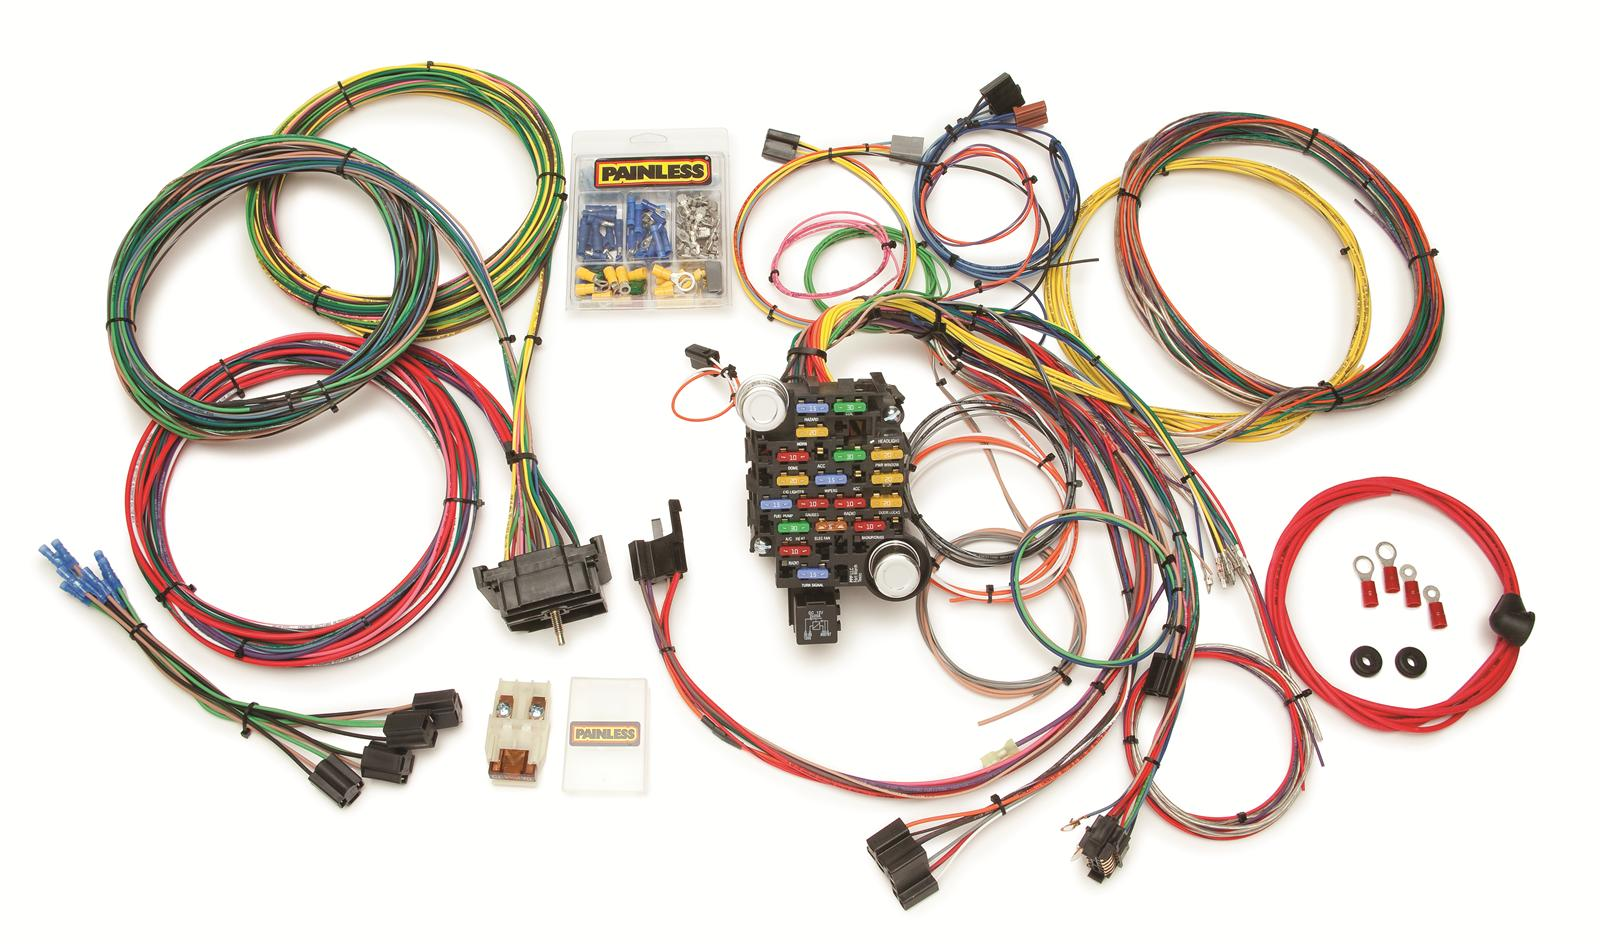 prf 10206_xl painless performance gmc chevy truck harnesses 10206 free 67-72 chevy c10 wiring diagram at gsmx.co